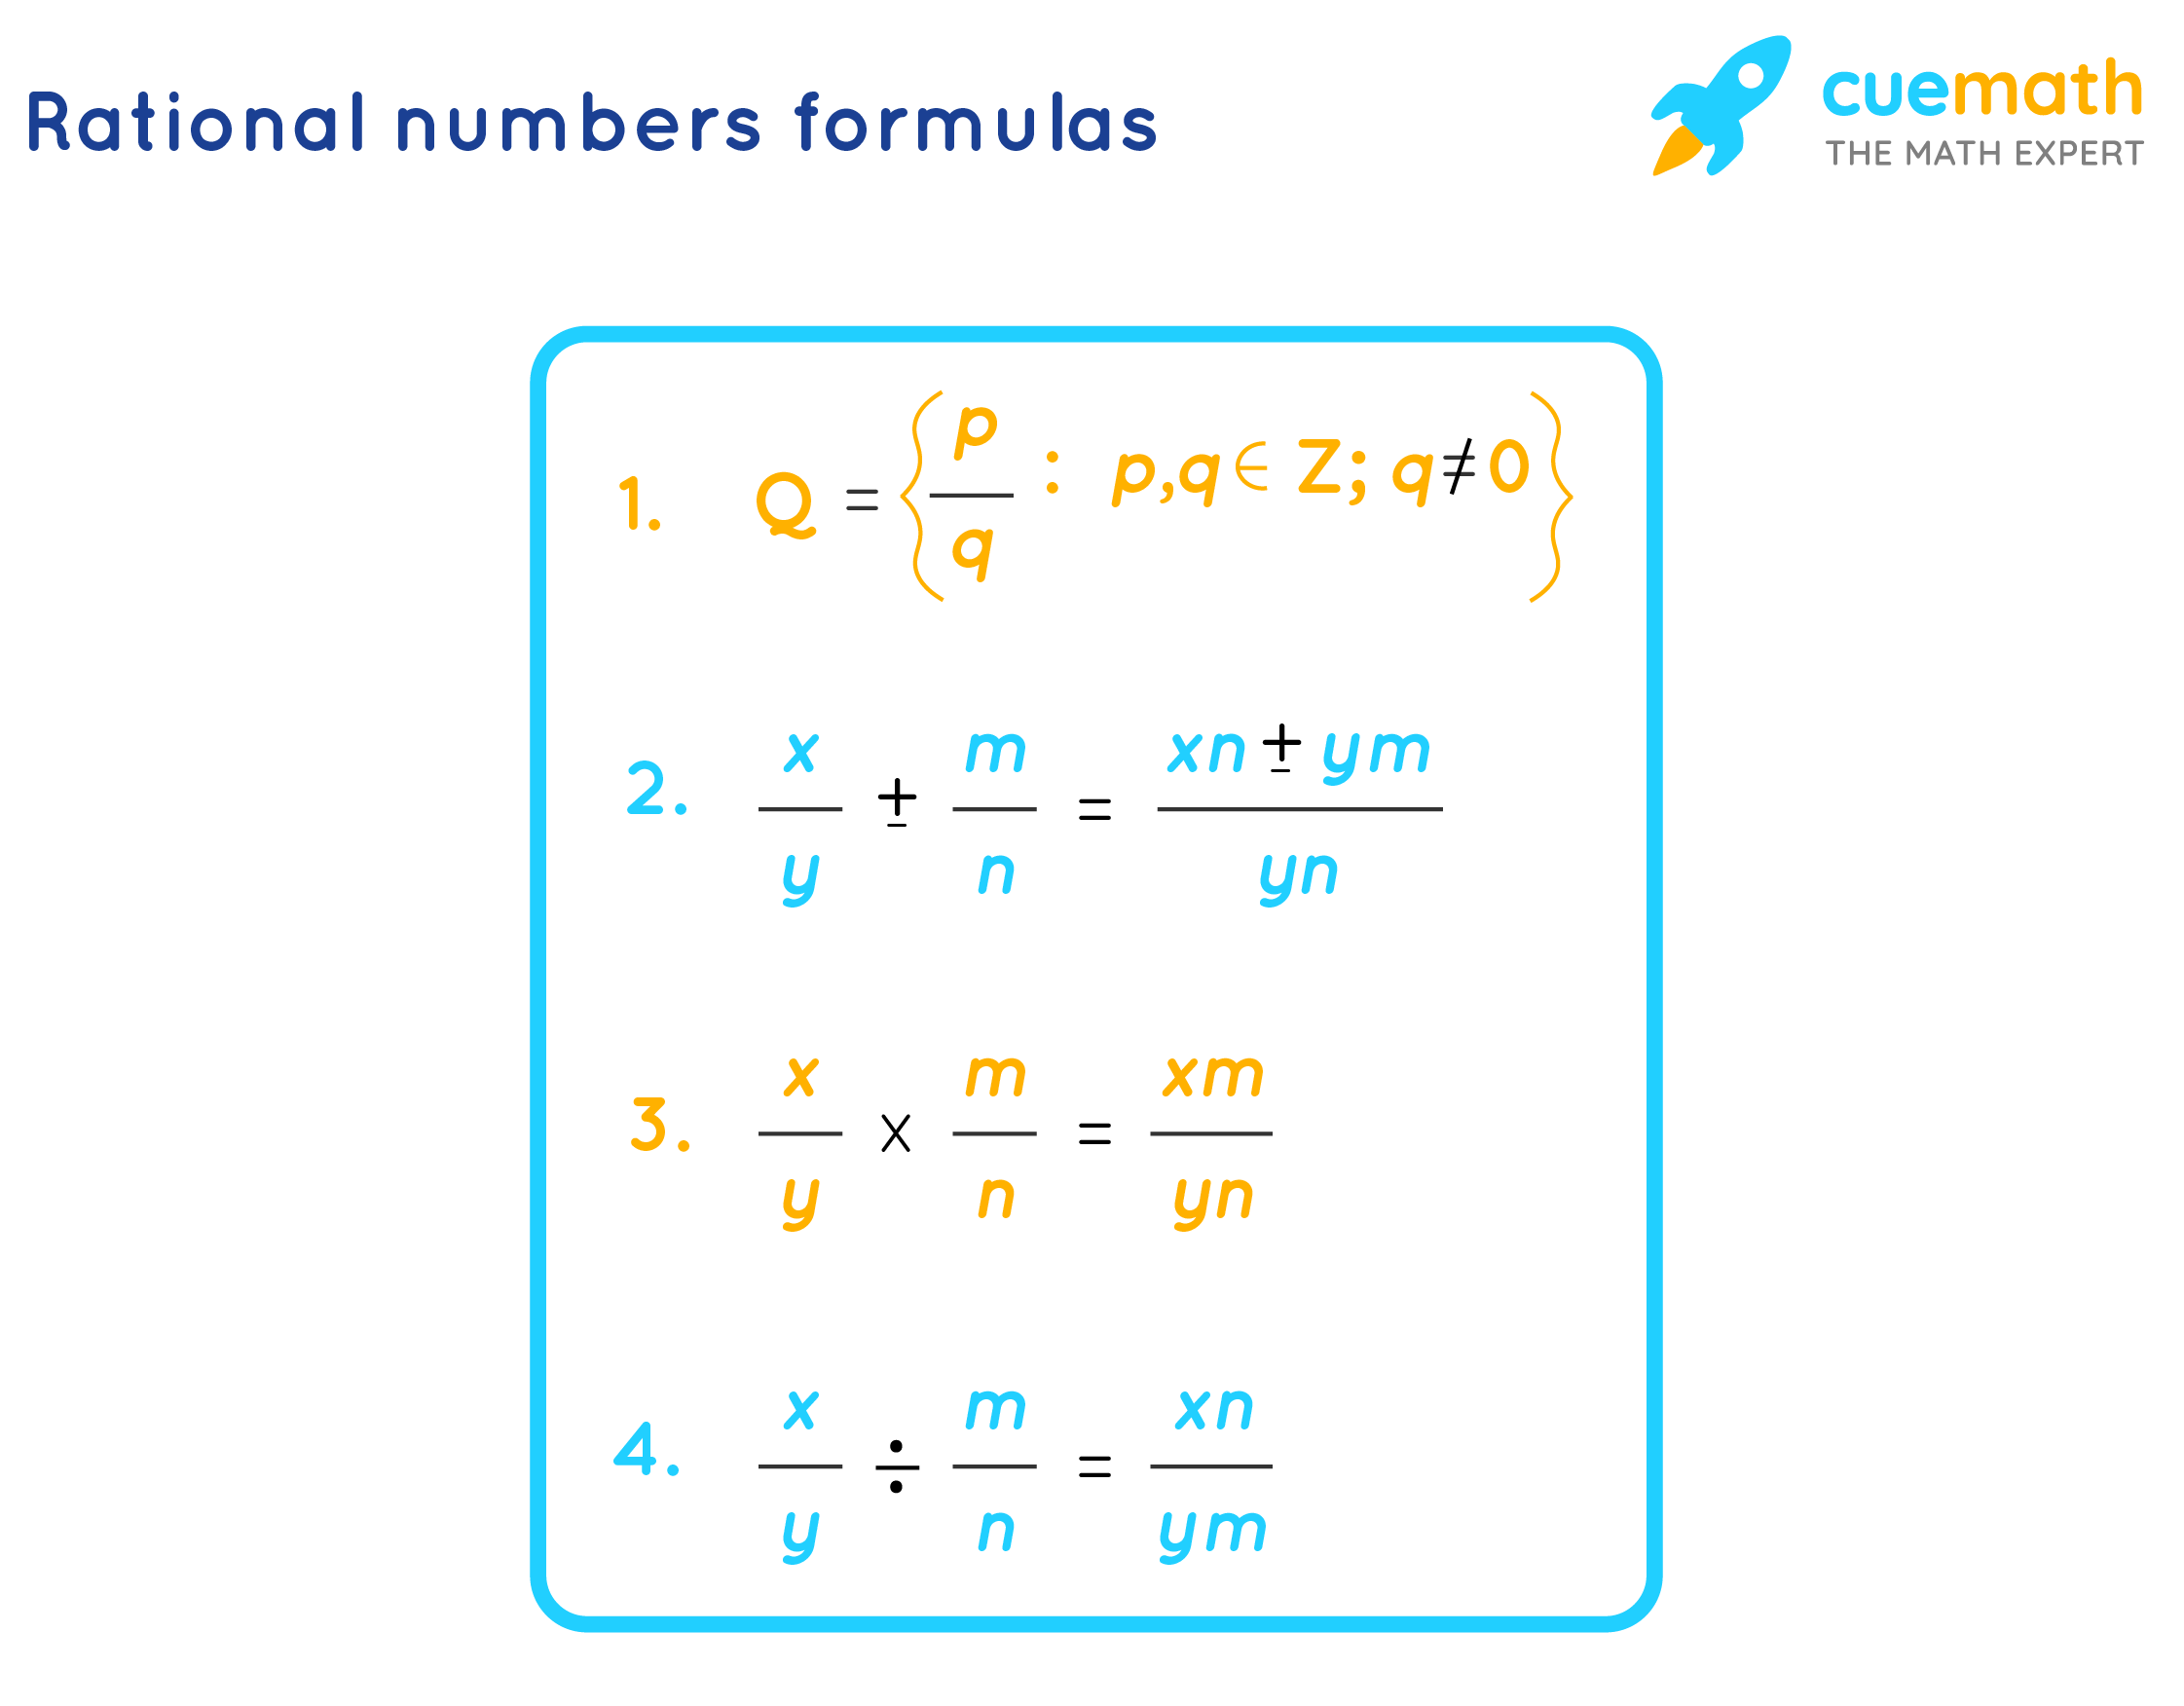 Rational numbers formulas